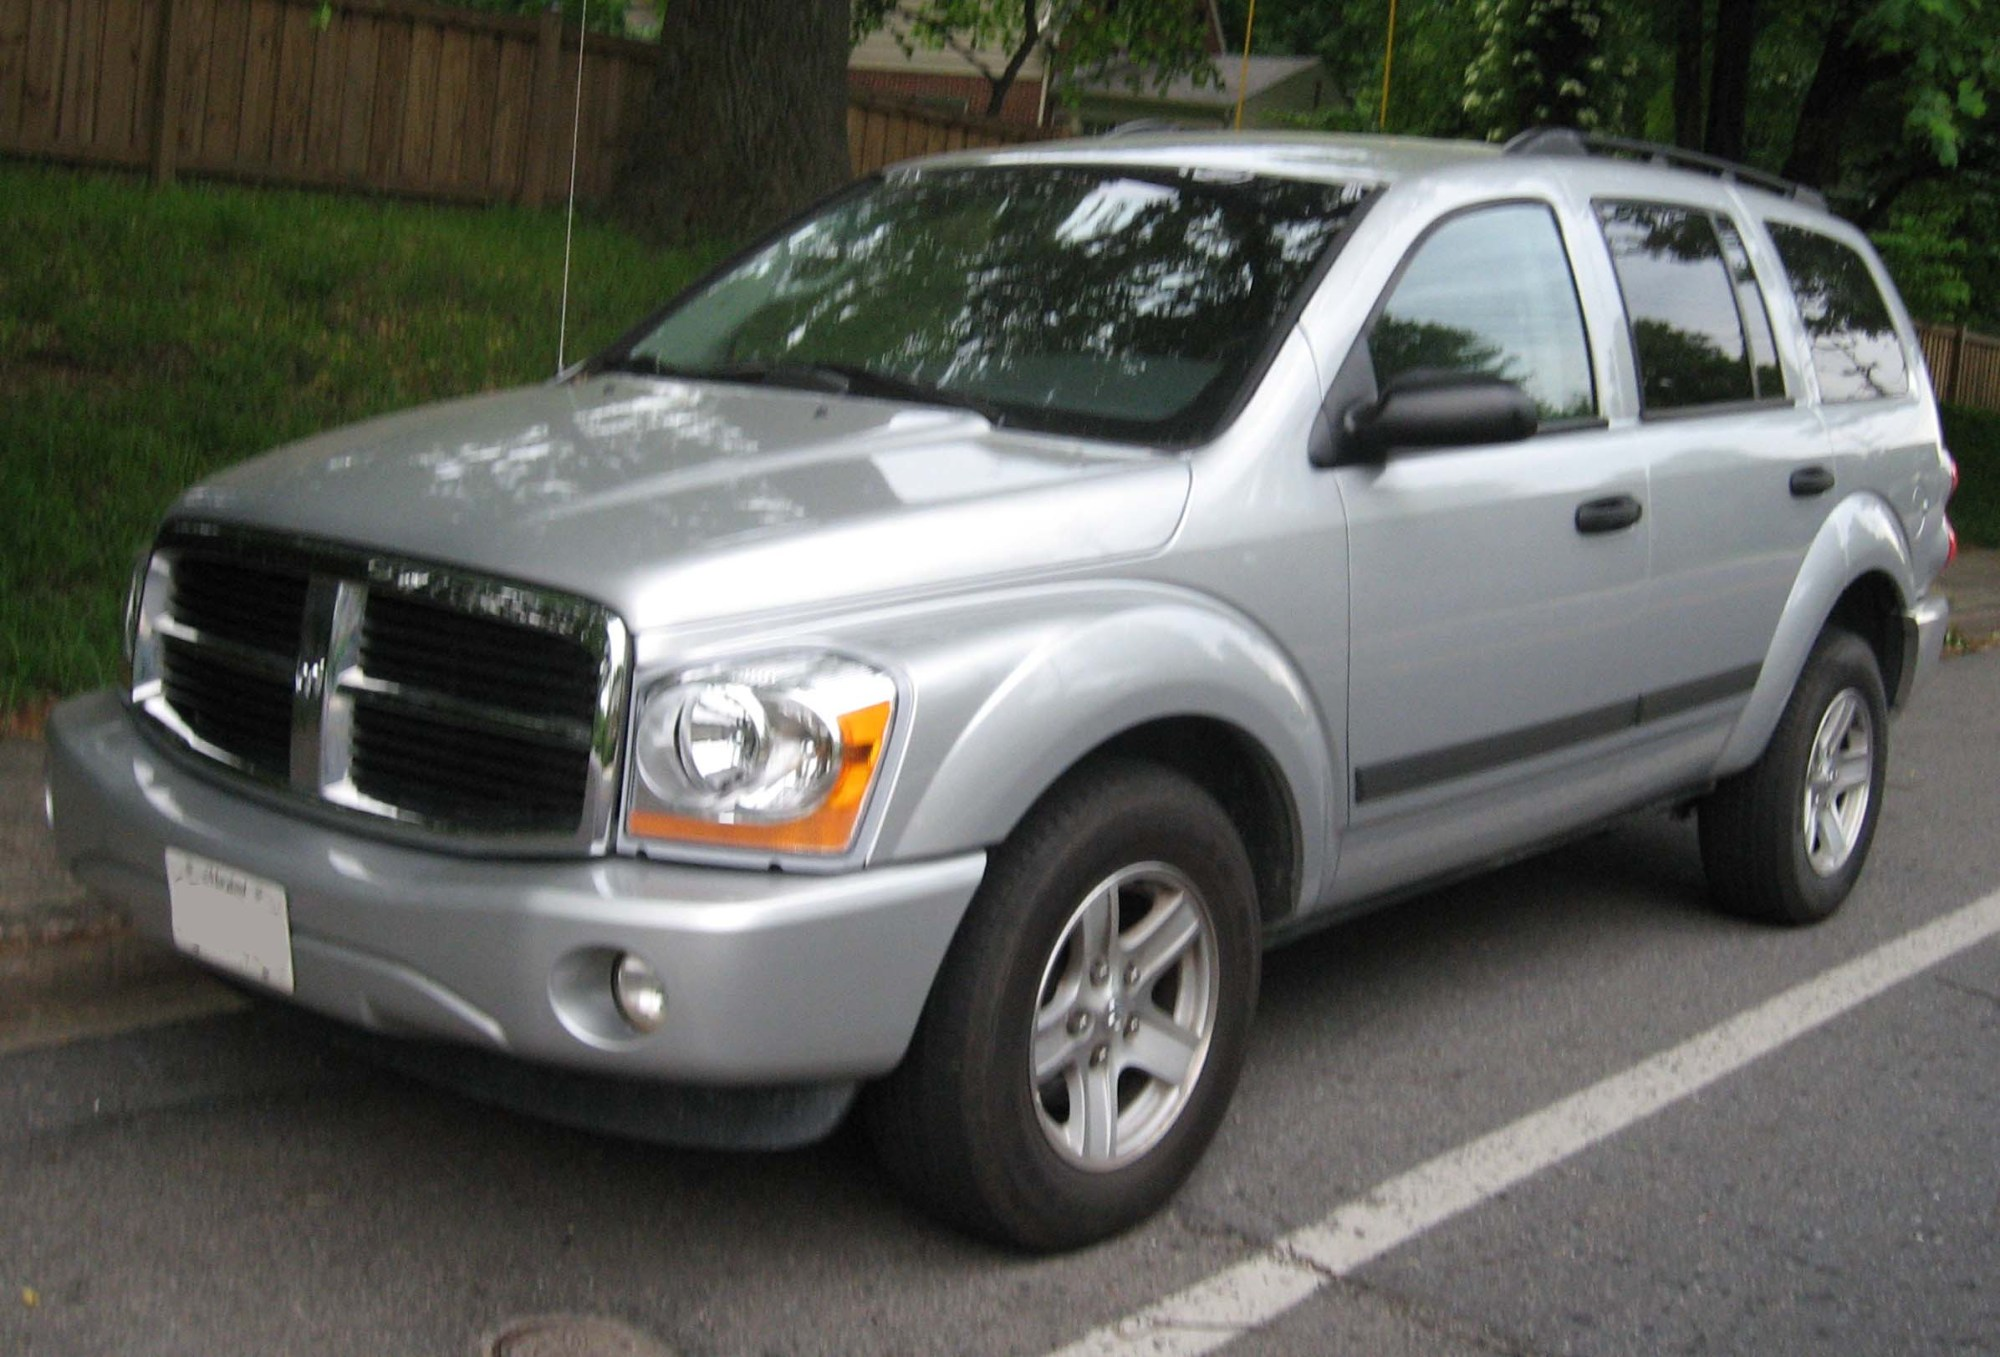 hight resolution of 2004 dodge durango st 2wd photo 1